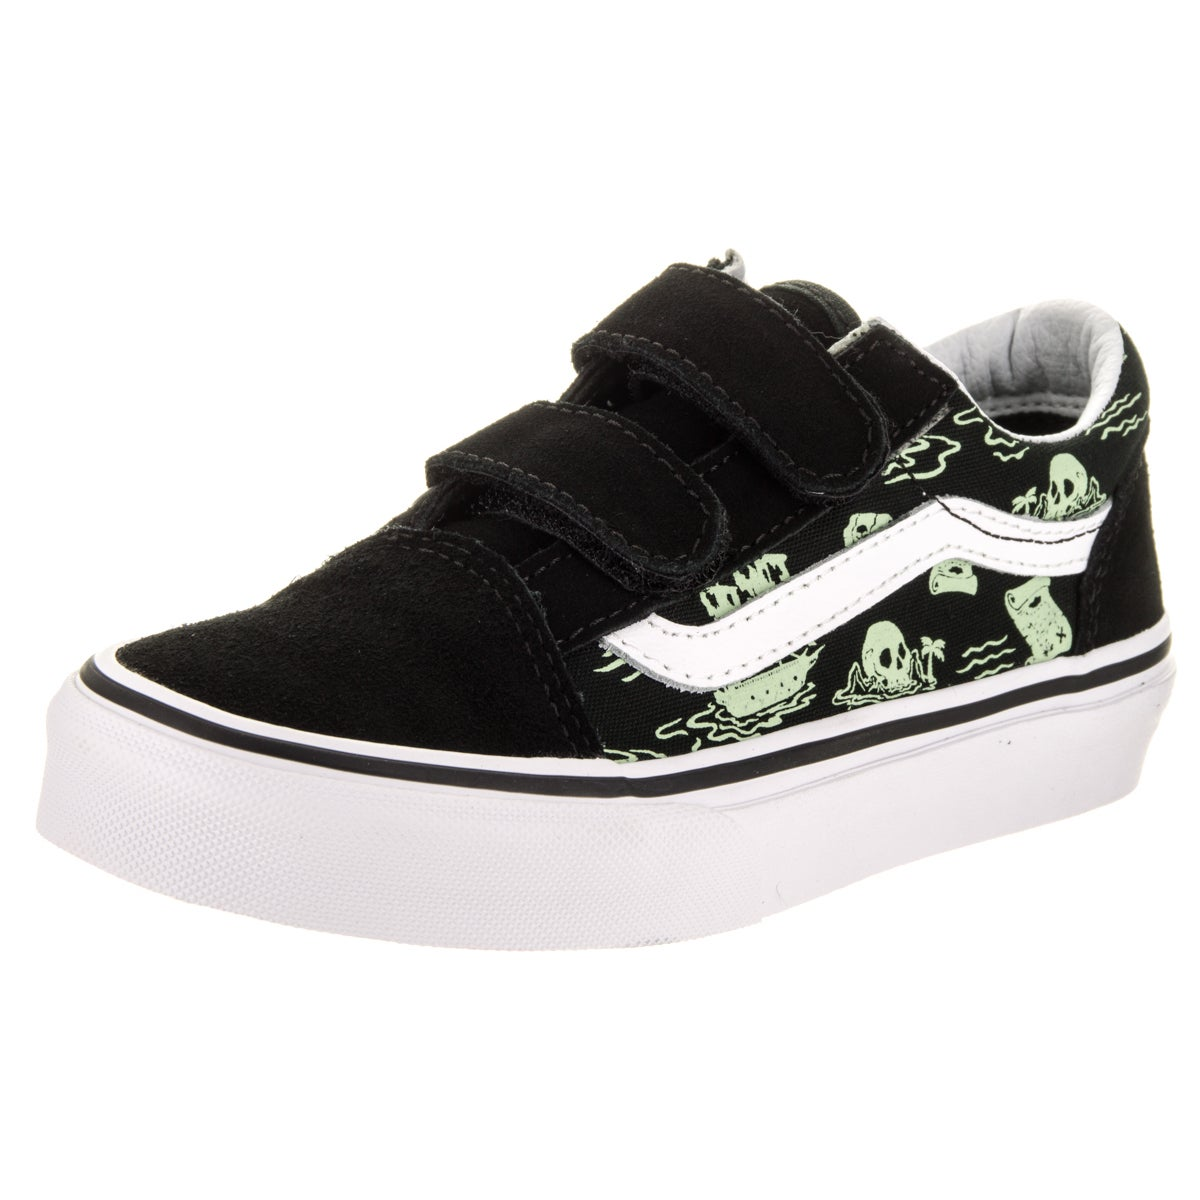 Shop Vans Kids Old Skool V (Glow Pirate) Skate Shoe - Free Shipping ... c29a3ff3f